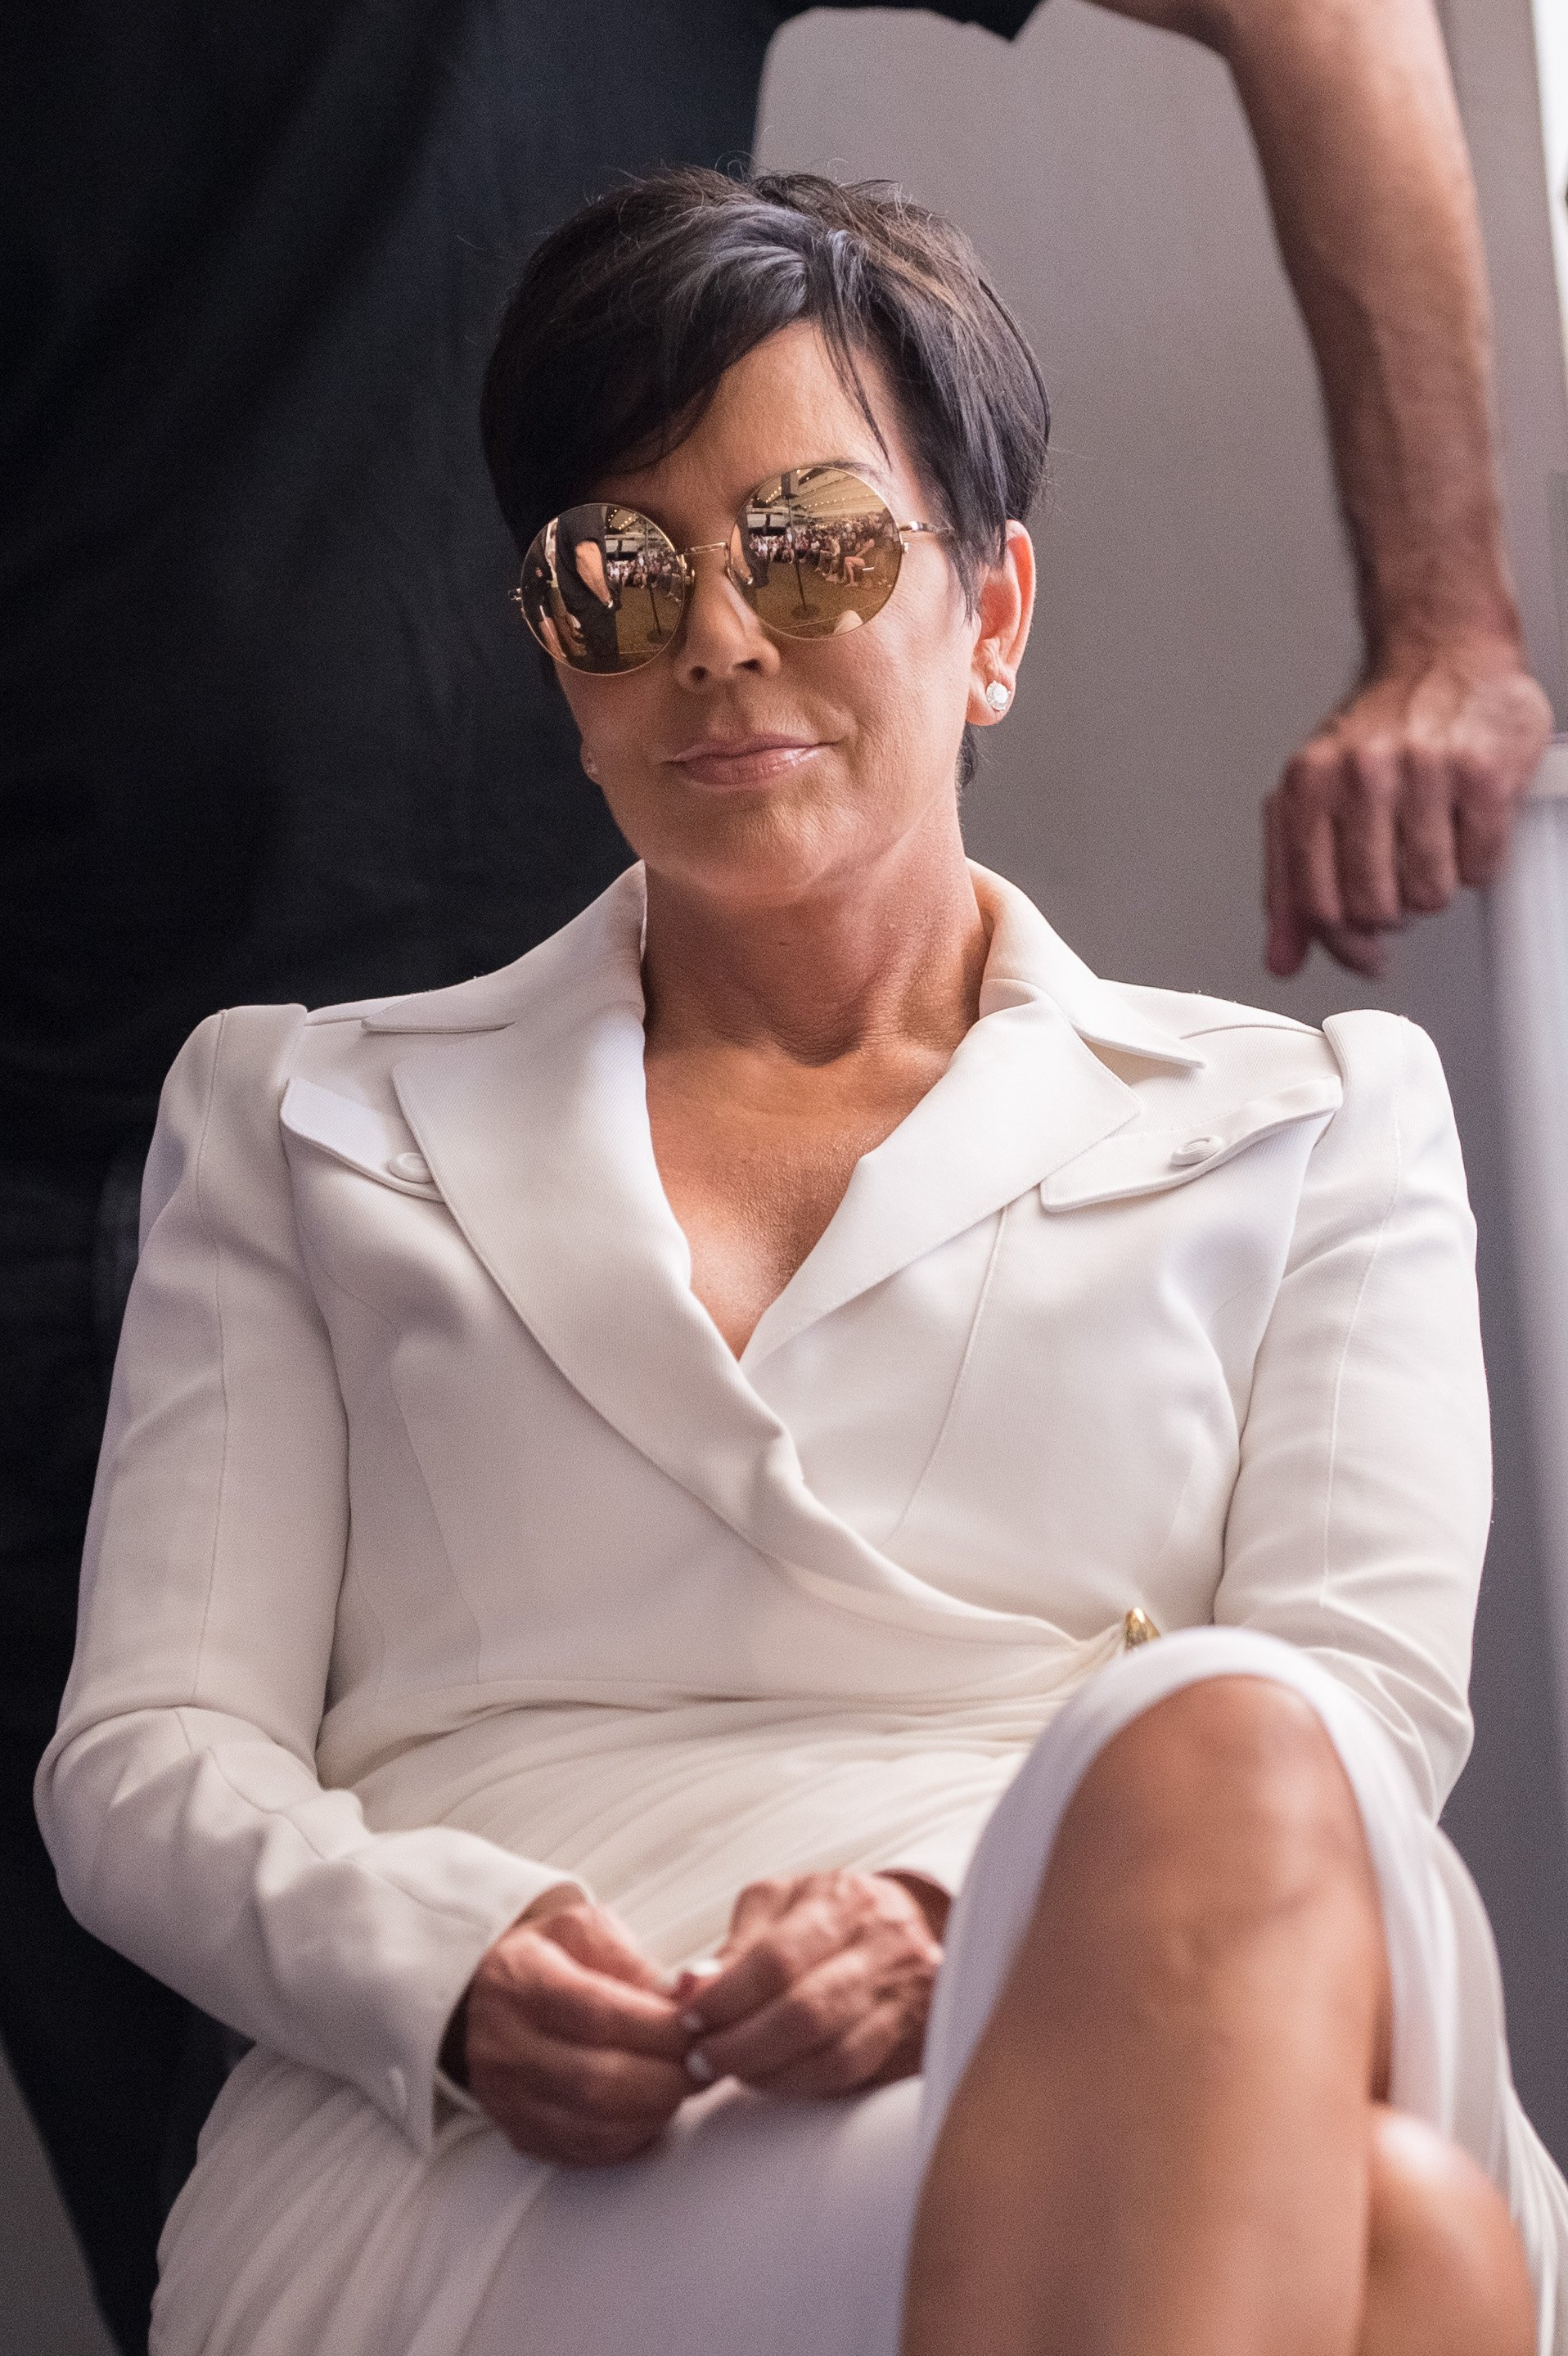 Kris Jenner at a talk during the Cannes Lions International Festival in June 2015. | Photo: Getty Images